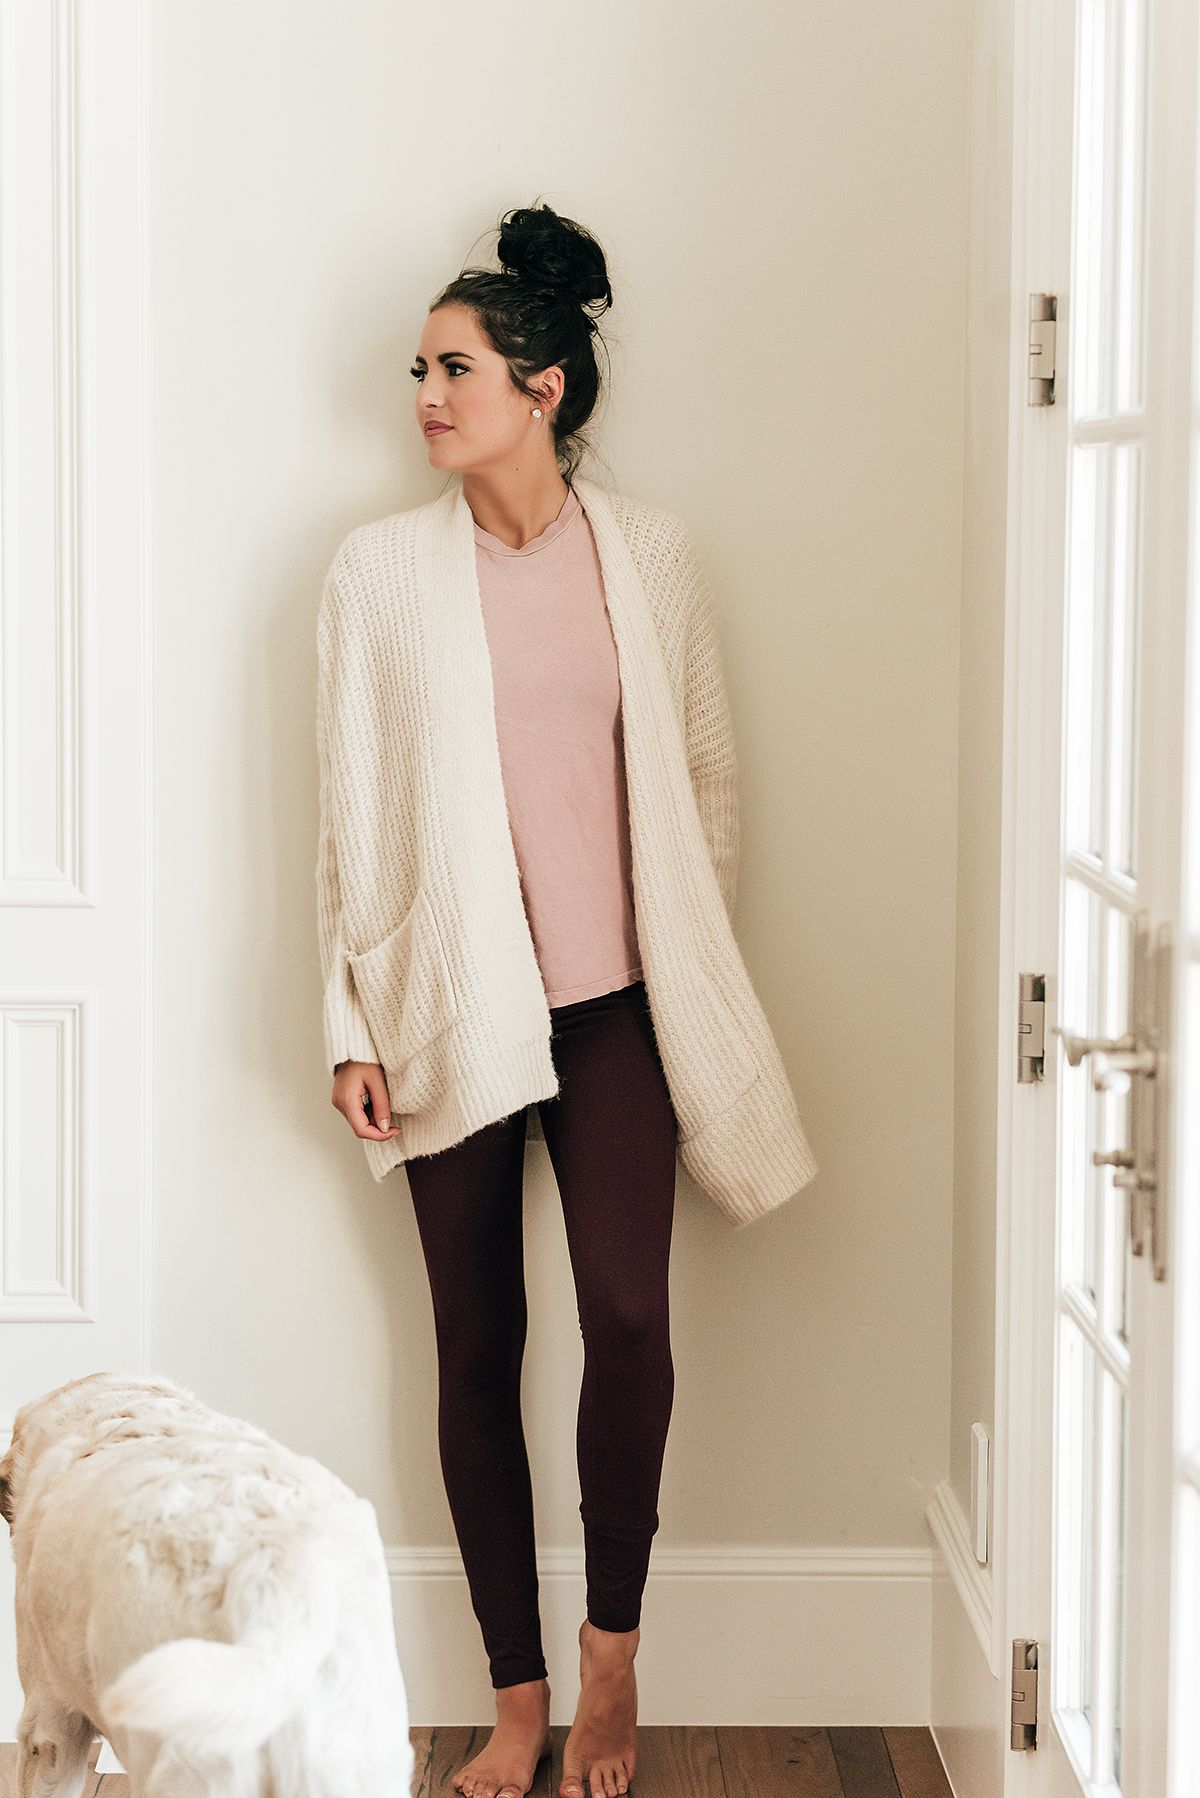 130bf4b9919ab nice cardigan and love the color combo of the pink tee, burgandy leggings  and creamy cardigan. Pink Peonies by Rach Parcell - A Personal Style, ...